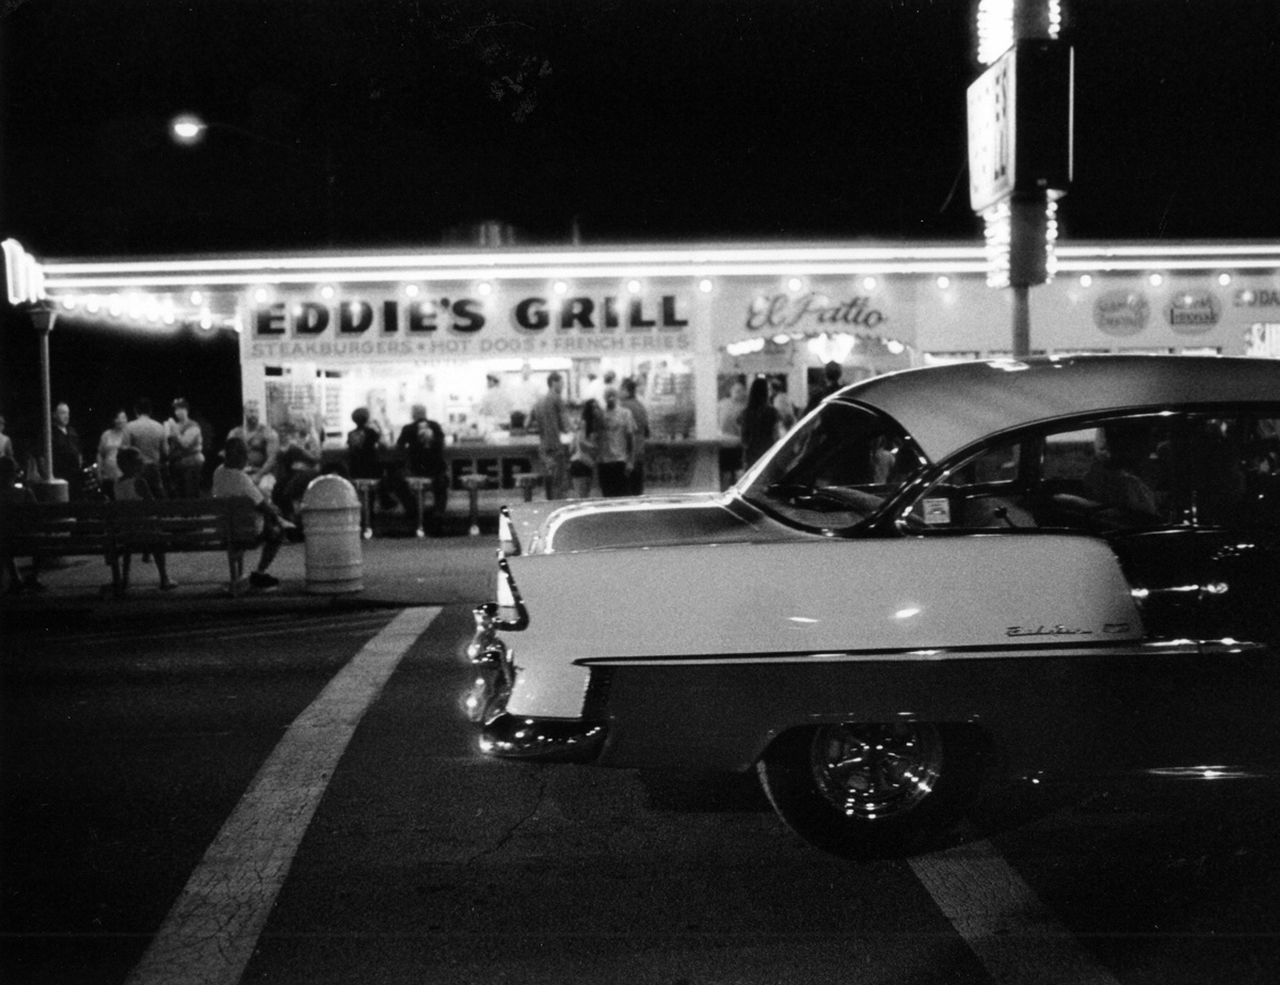 Back In The Day Bel Air Building Exterior Car Chevy City Eddie's Grill Film Noir Fun Geneva On The Lake Ohio Leisure Activity Mode Of Transport Night Night Photography Outdoors Real People Resort Road Saturday Night Small Town Small Town USA Street Summer Tourism Transportation